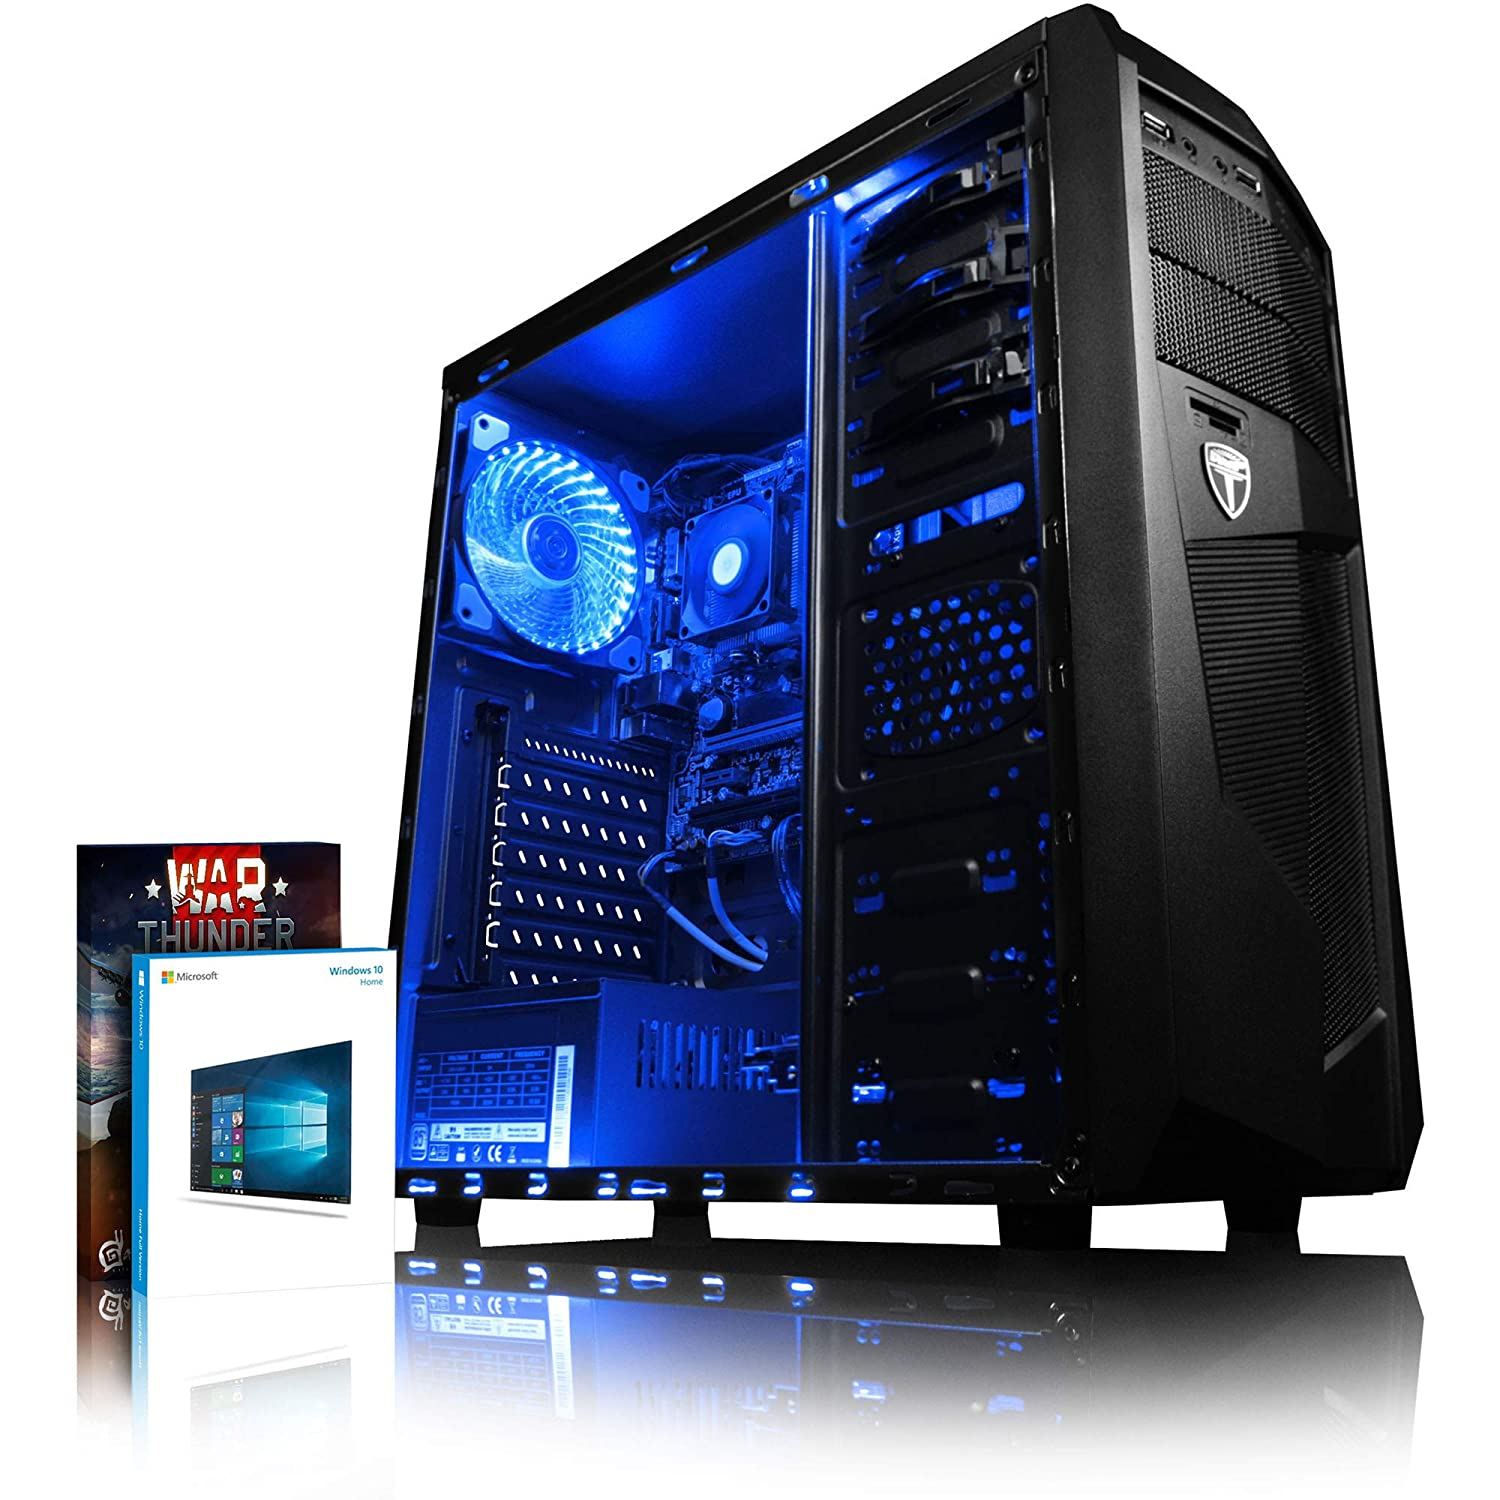 VIBOX Precision 6XS Gaming PC Ordenador de sobremesa con War Thunder Cupón de Juego, Windows 10 OS (4,0GHz AMD FX Quad-Core Procesador, Nvidia GeForce GT 710 Tarjeta Grafica, 16GB RAM, 2TB HDD)